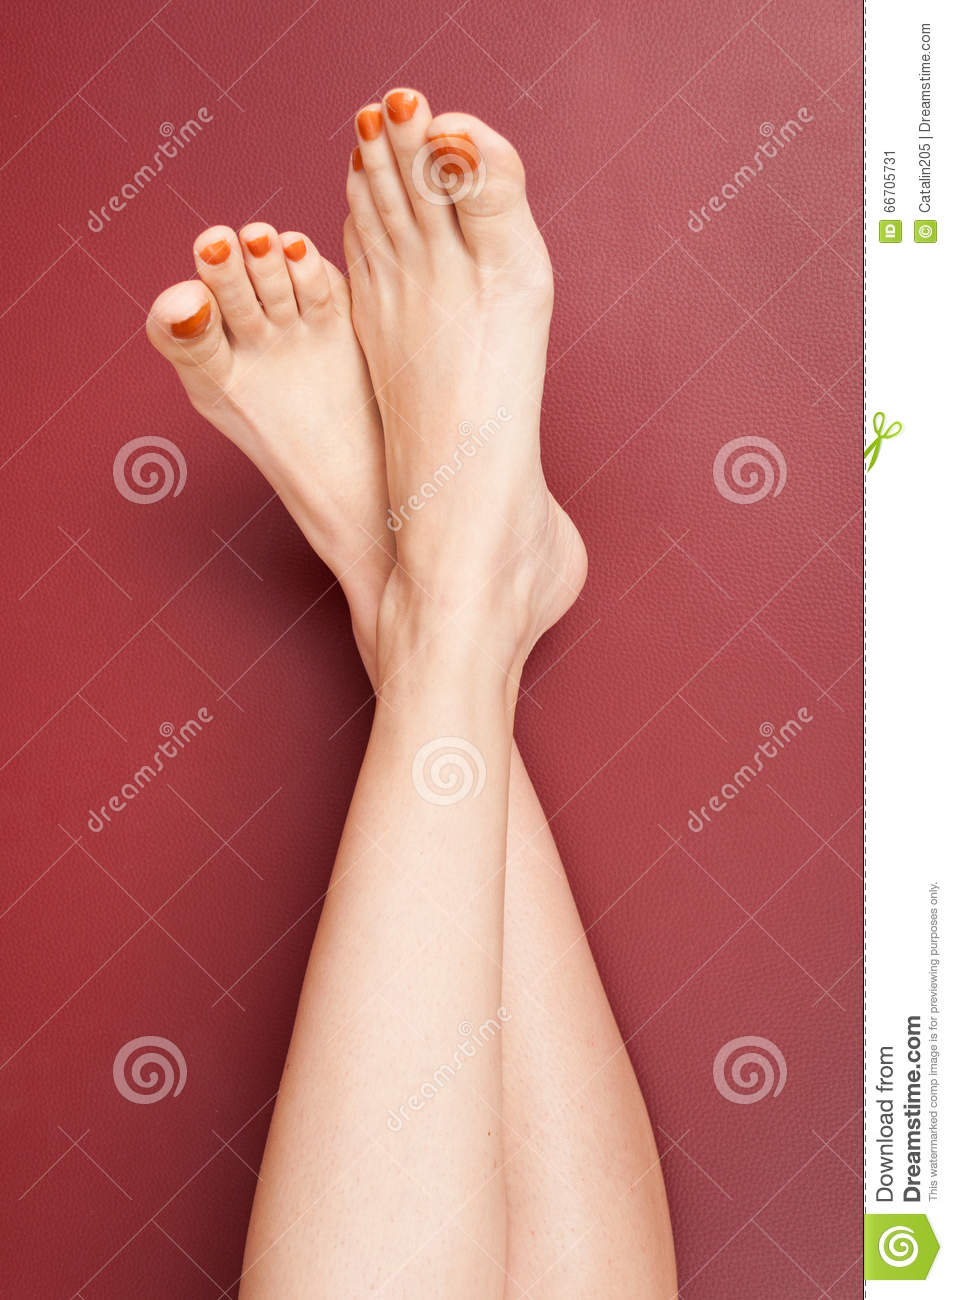 how to get smooth skin on legs